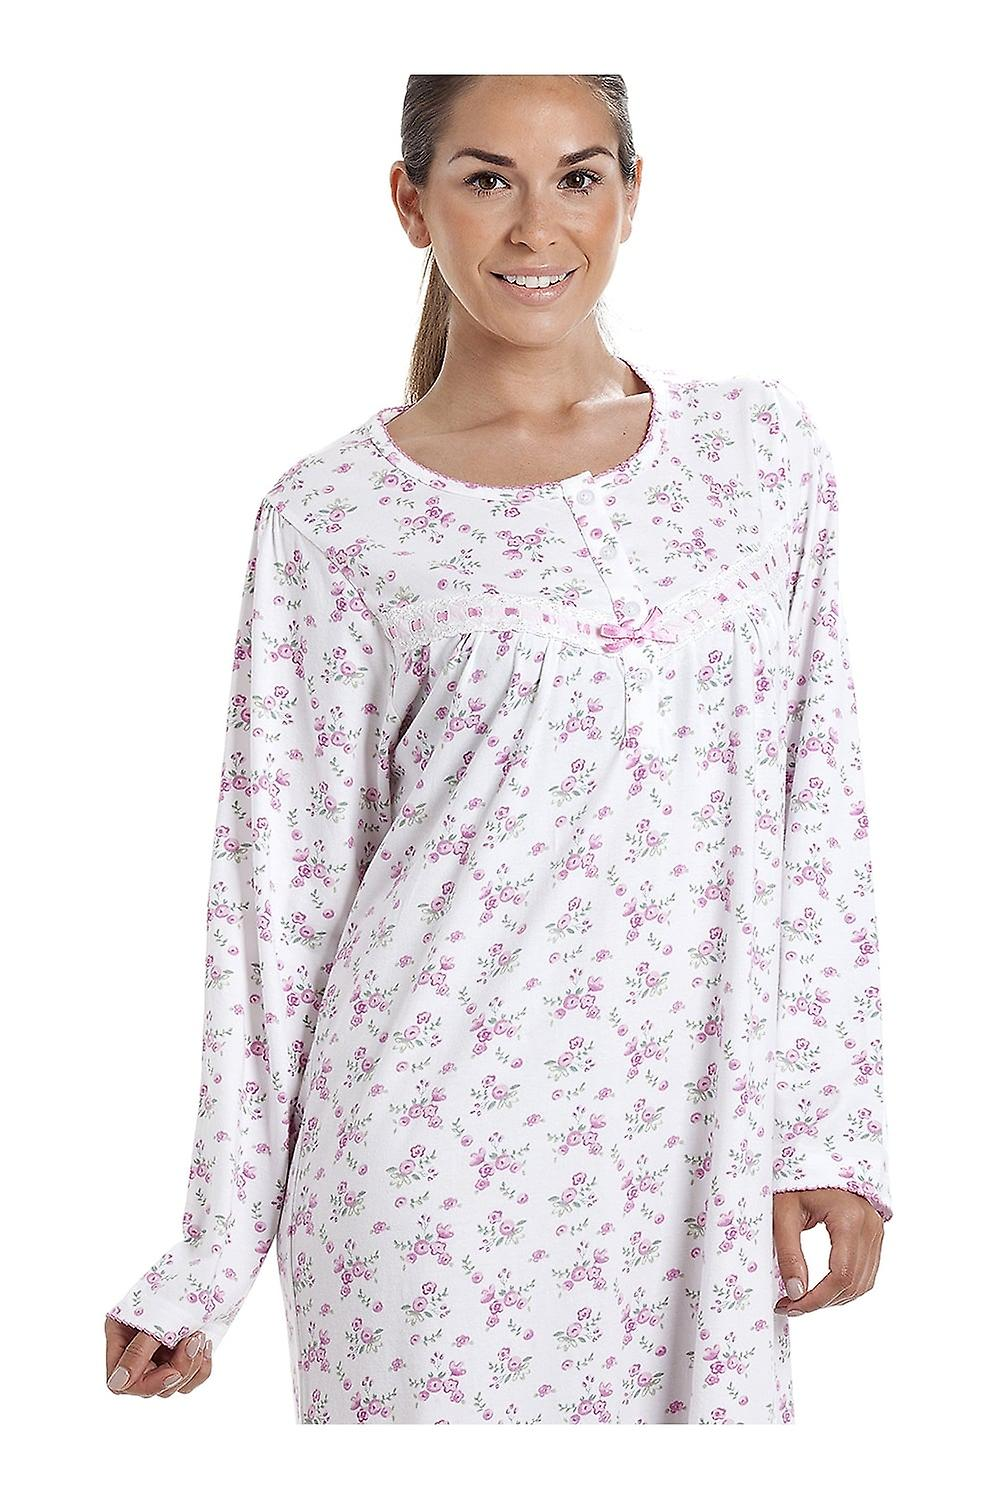 39d2319ff0 Camille Classic Long Sleeve Pink Floral Print 100% Cotton White Nightdress